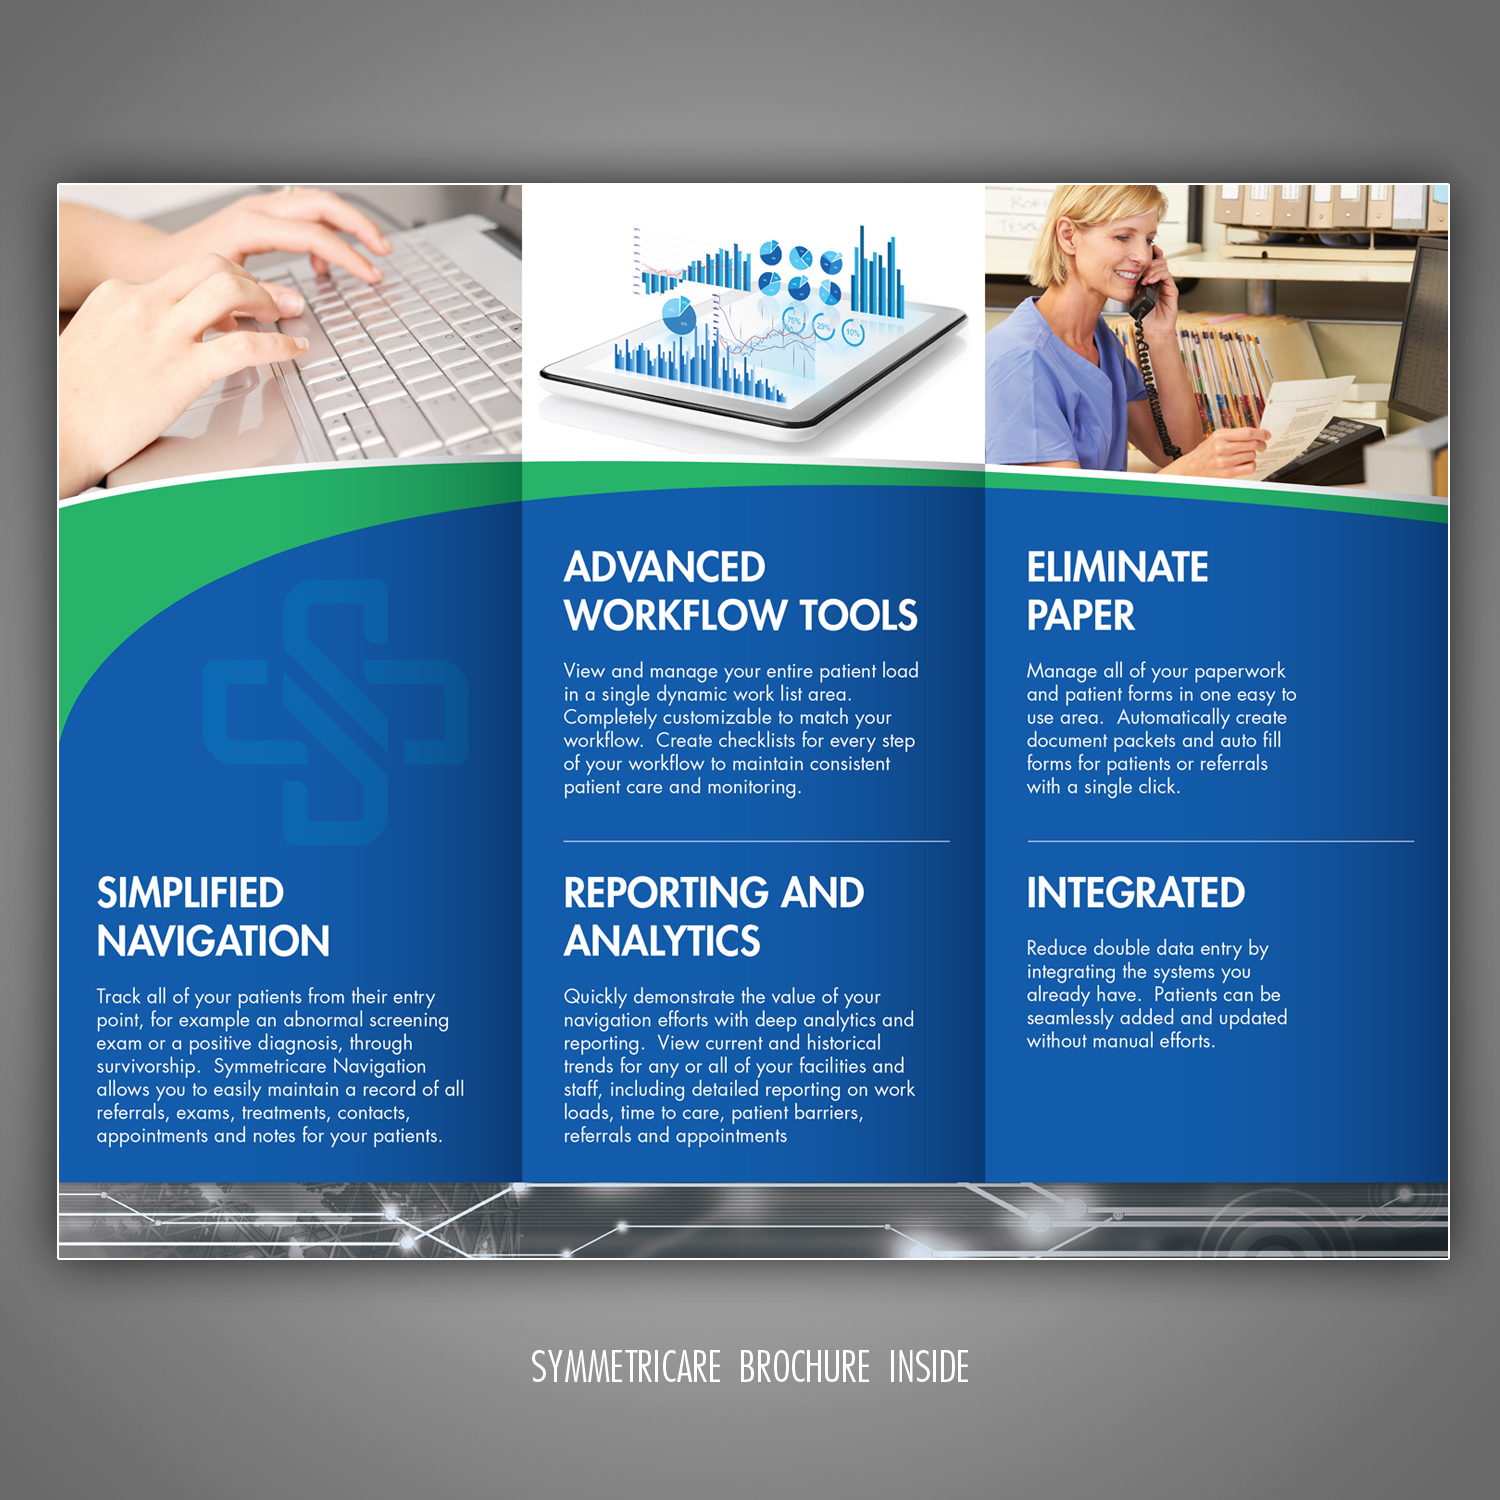 Serious Feminine Healthcare Brochure Design For A Company By Designconnection Design 12580511